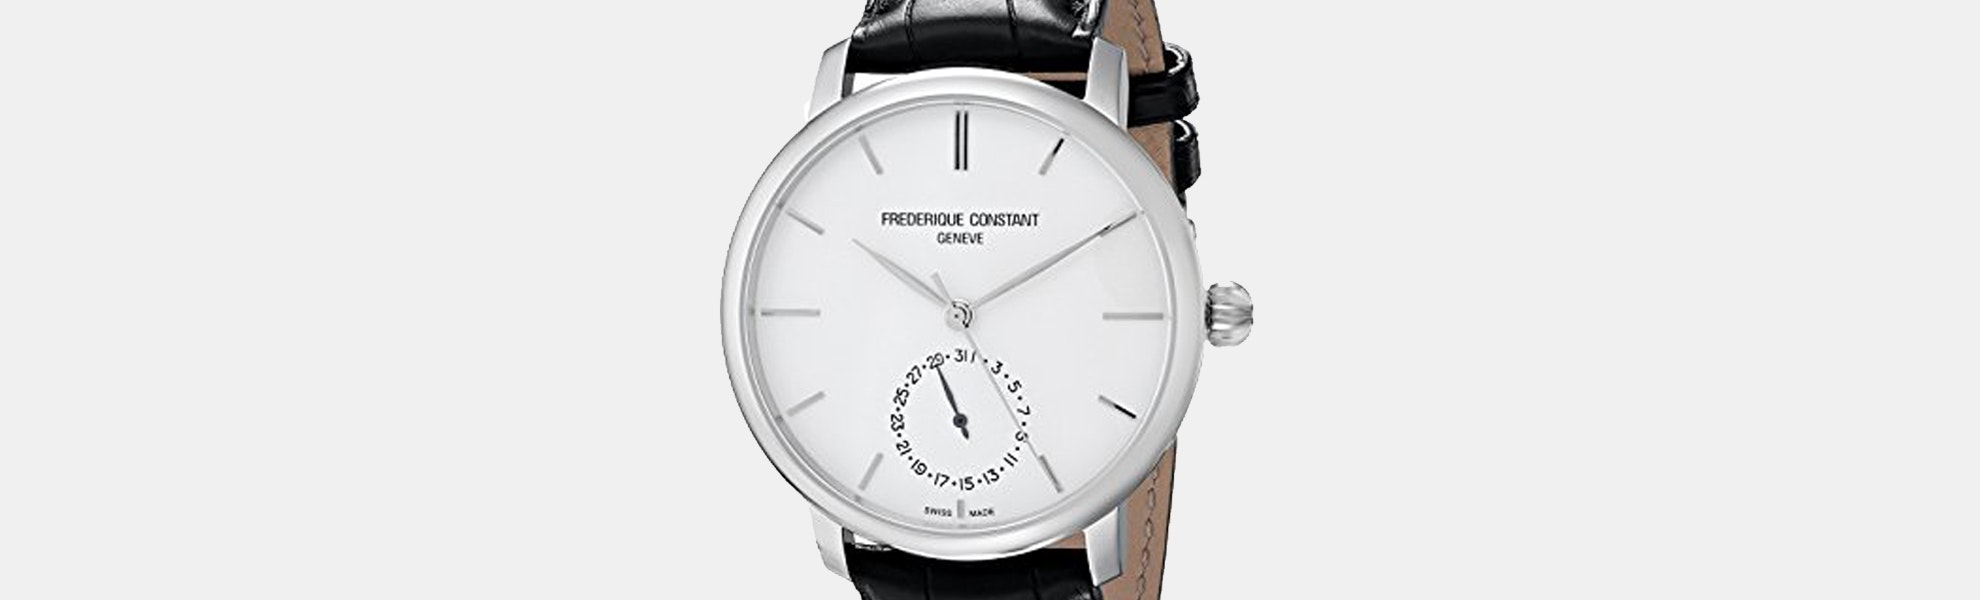 Frédérique Constant Slim Line Automatic Watch